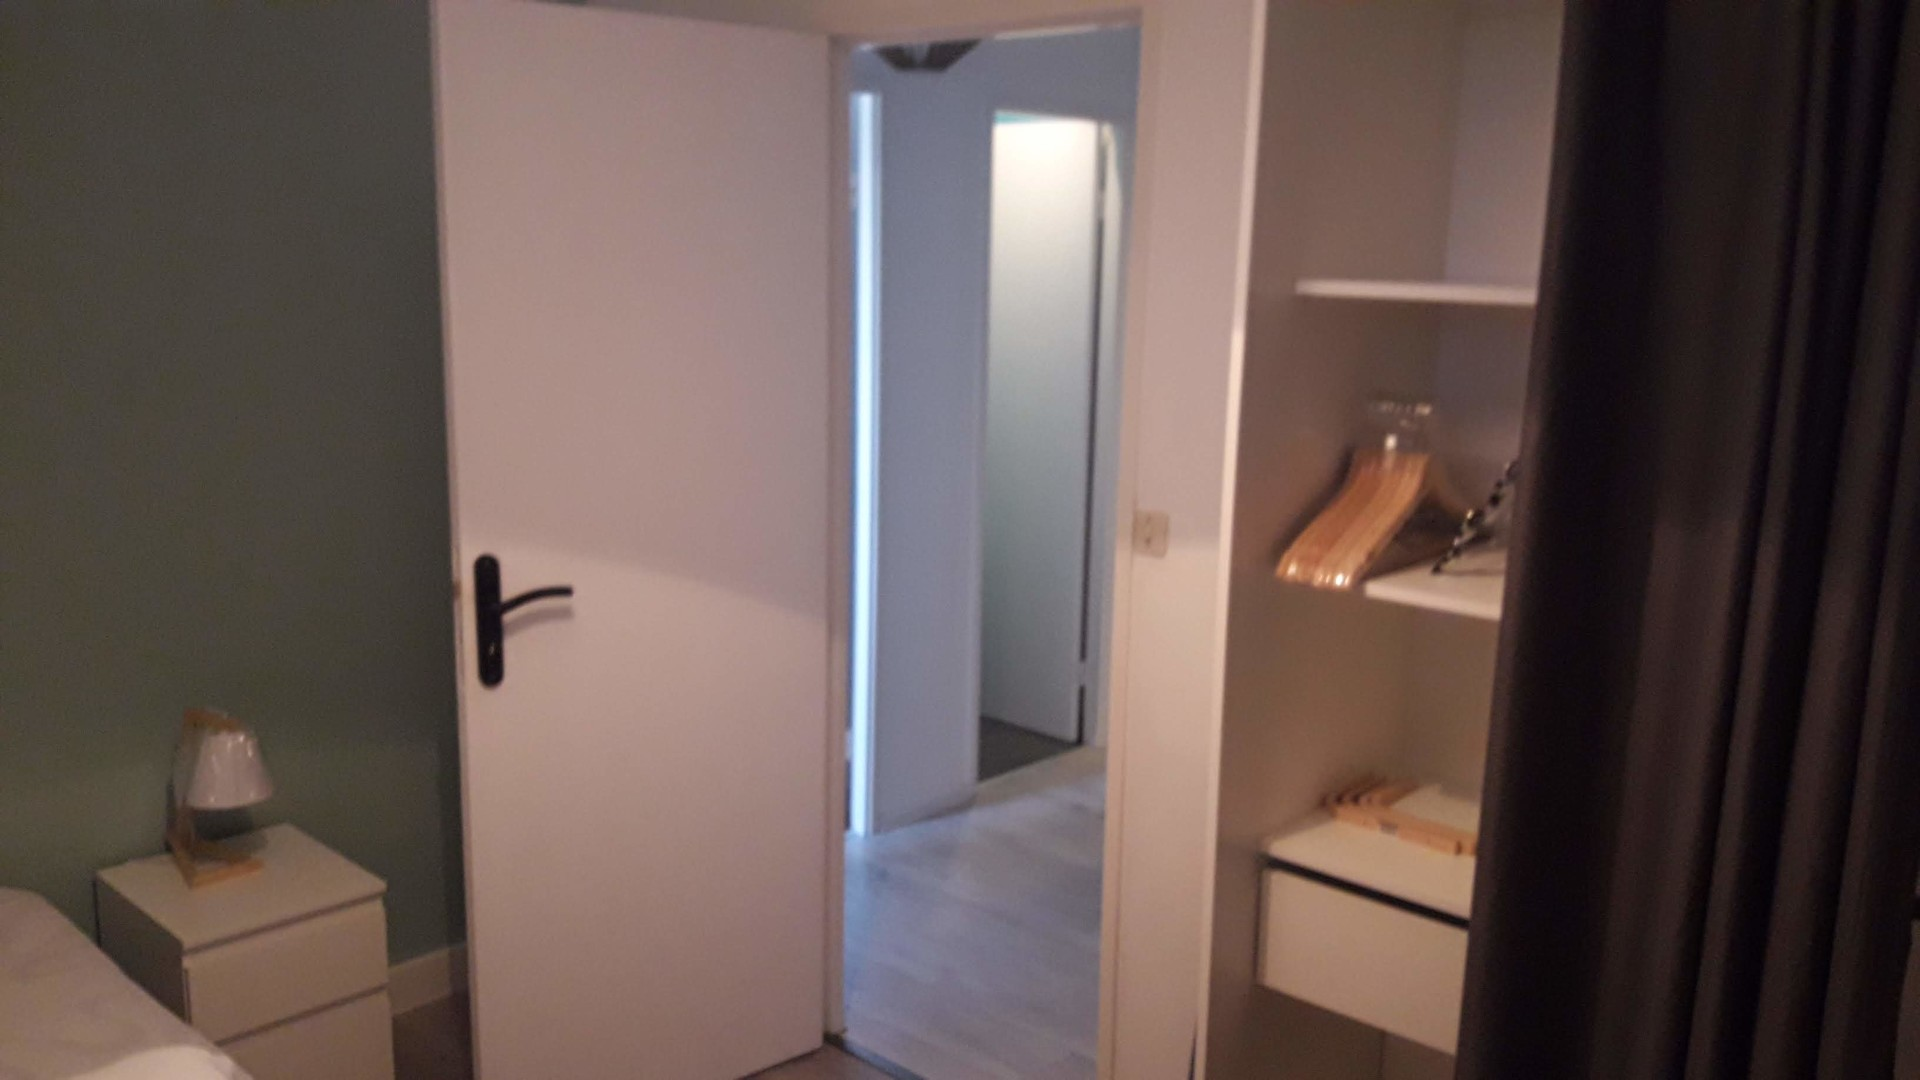 Searching For A Room In Bordeaux Rent This Friendly Single Room Ideal For International And Local Students With Internet And With Elevator